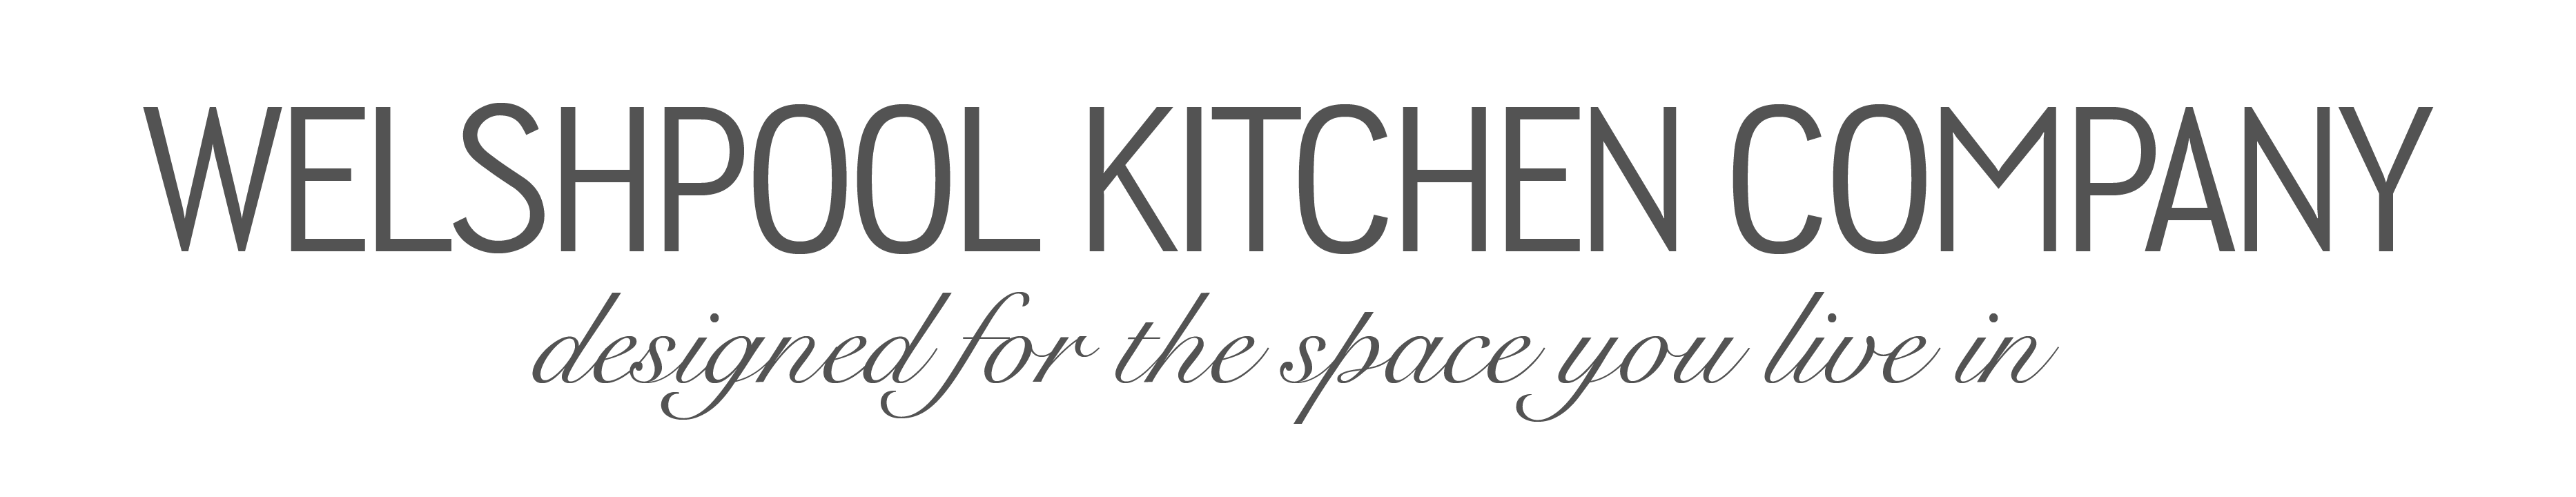 Welshpool Kitchen Company